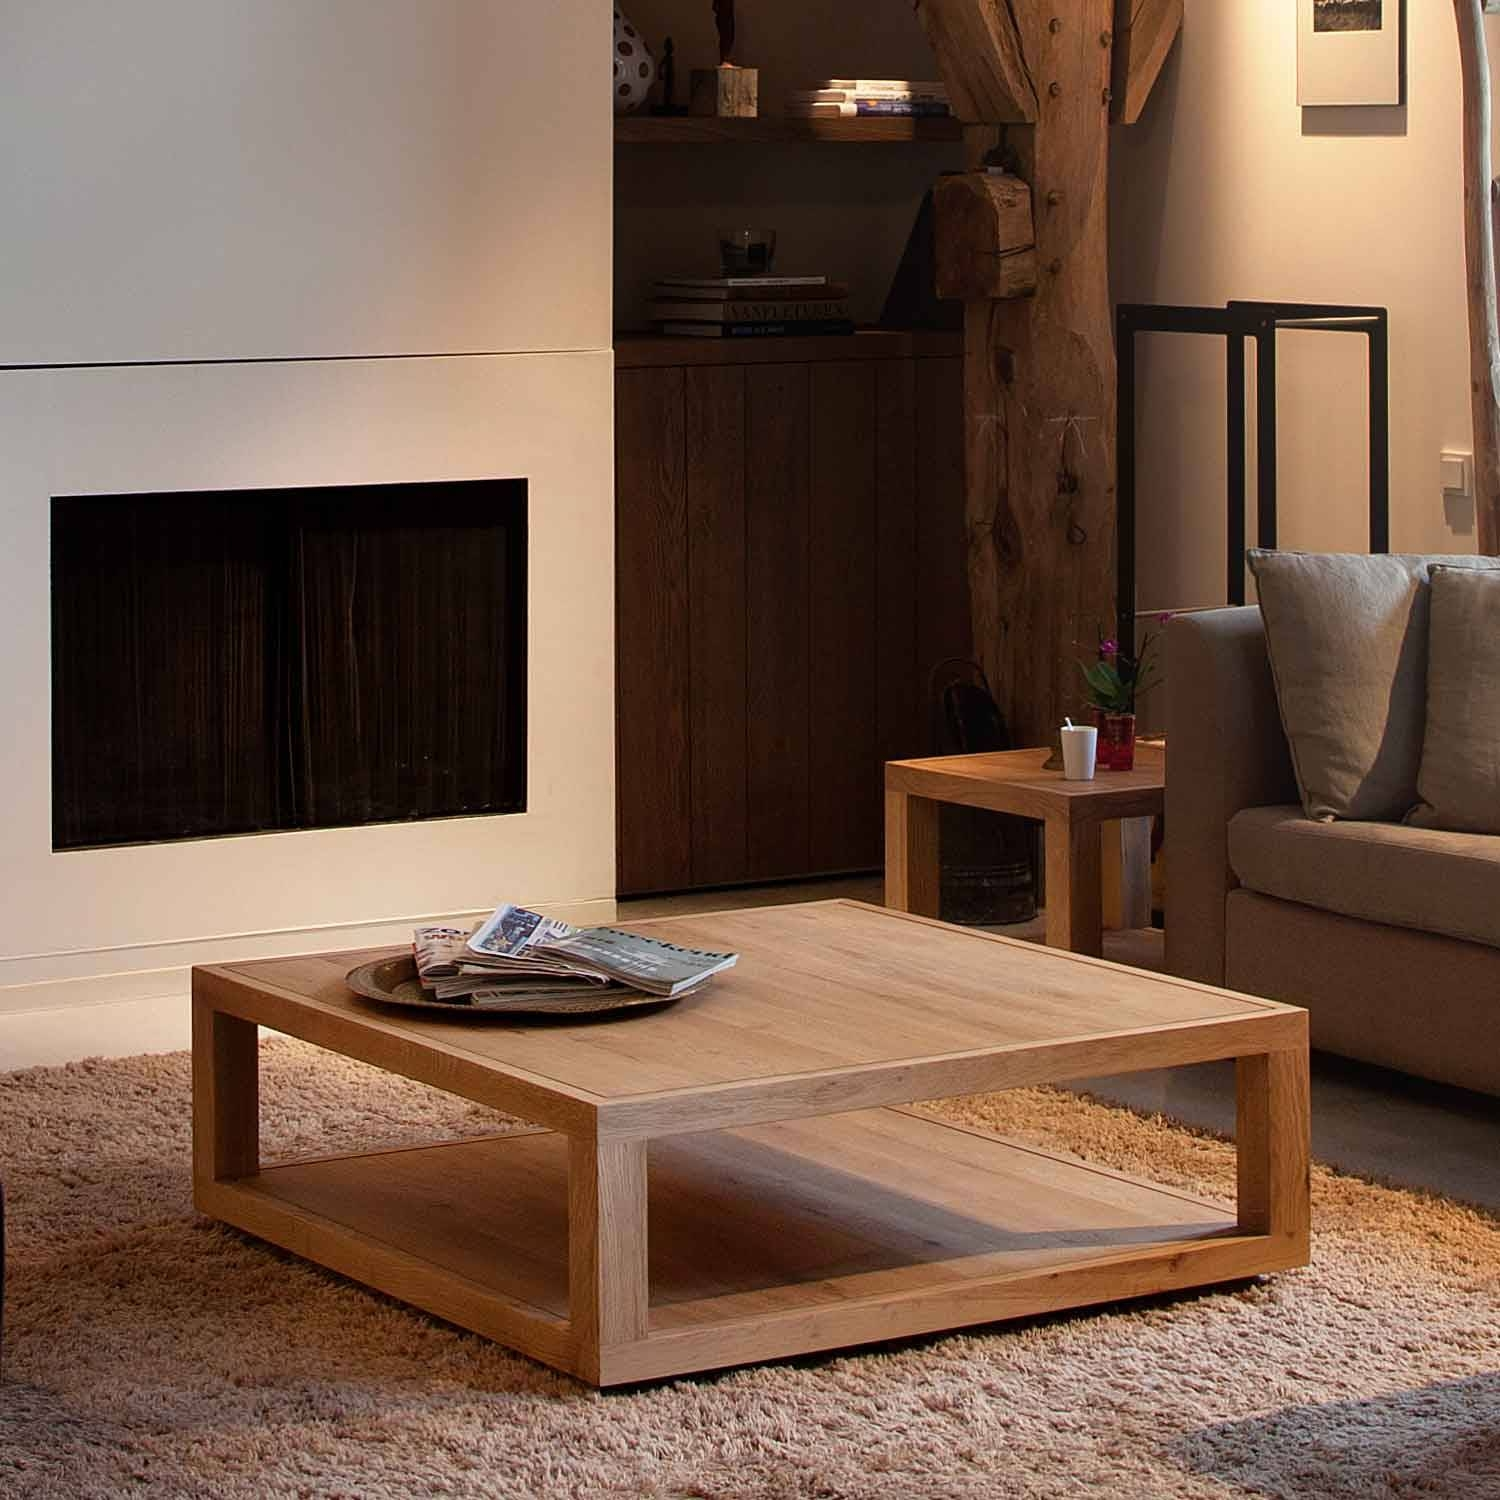 Custom Diy Low Square Wood Oak Coffee Table With Tray And throughout Coffee Tables With Magazine Storage (Image 12 of 30)